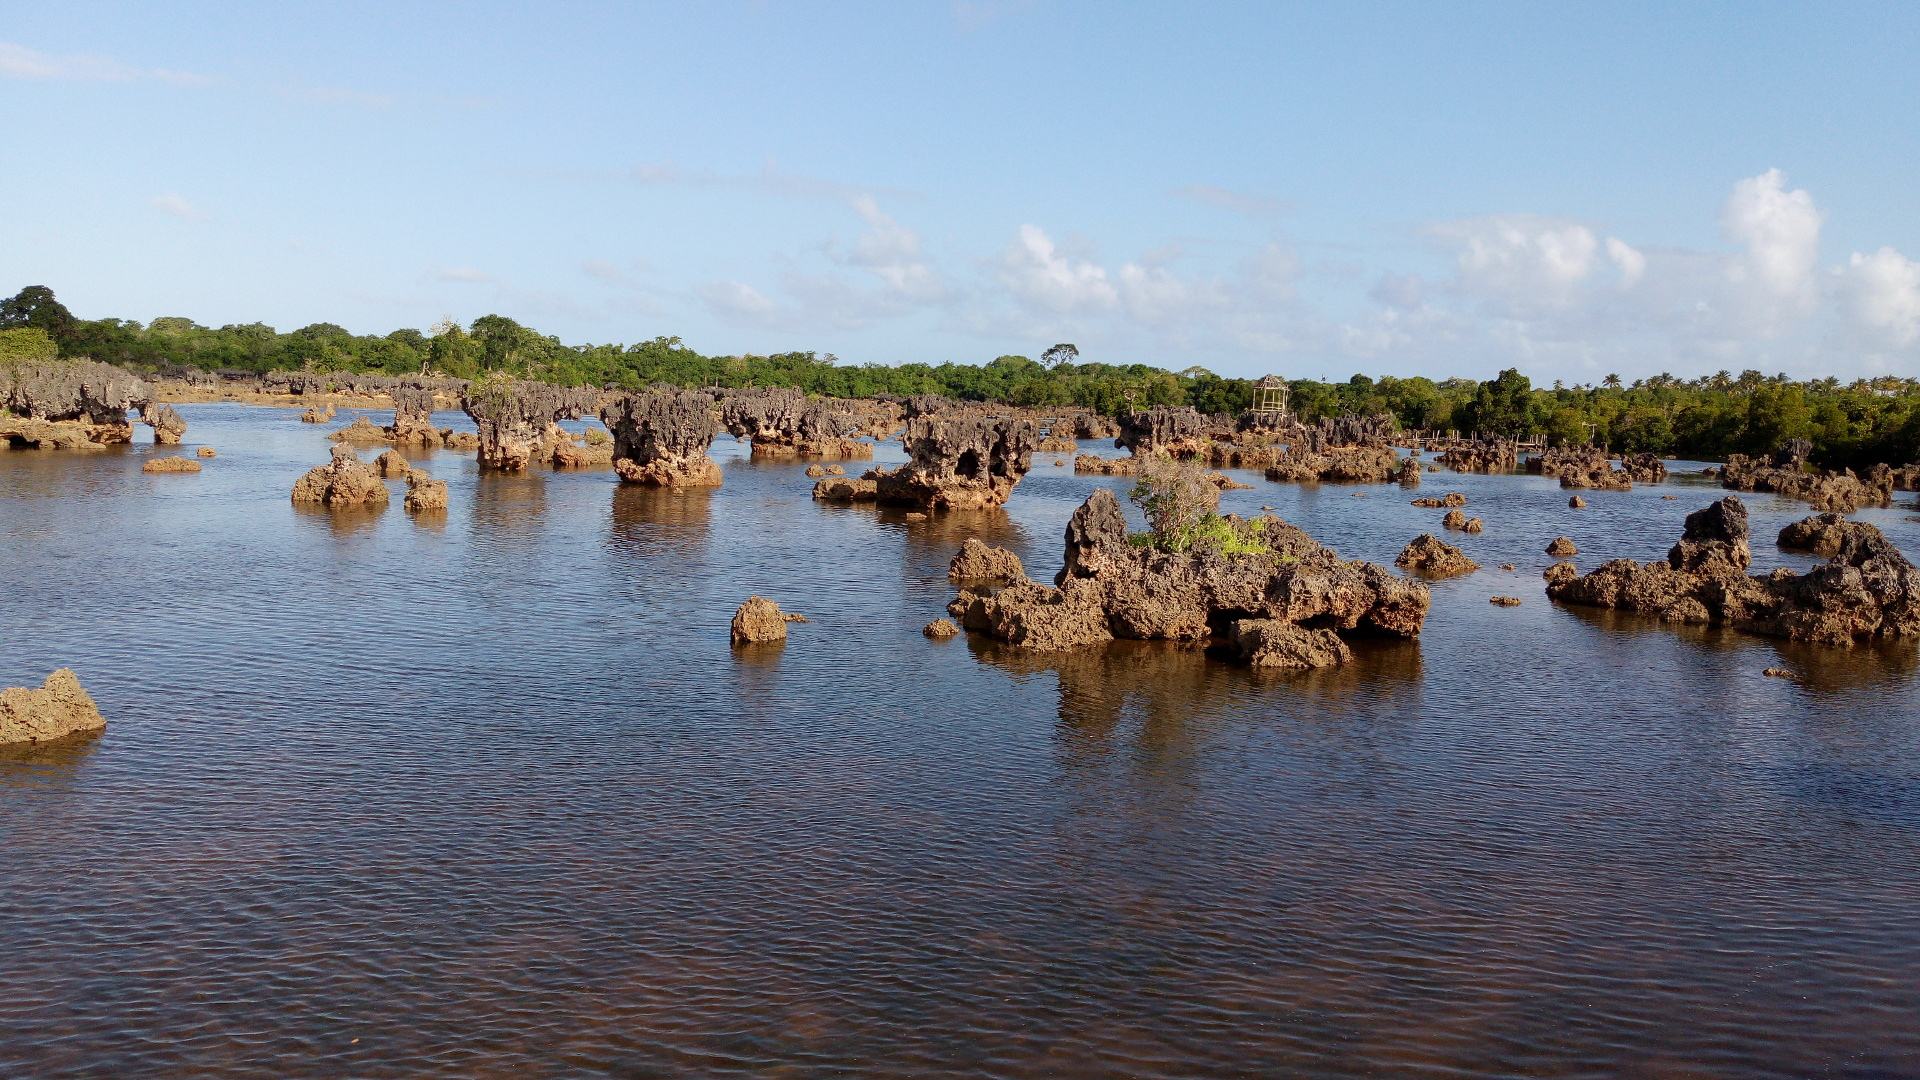 Beauty of Coral Gardens with Backdrop of Mangrove Forest